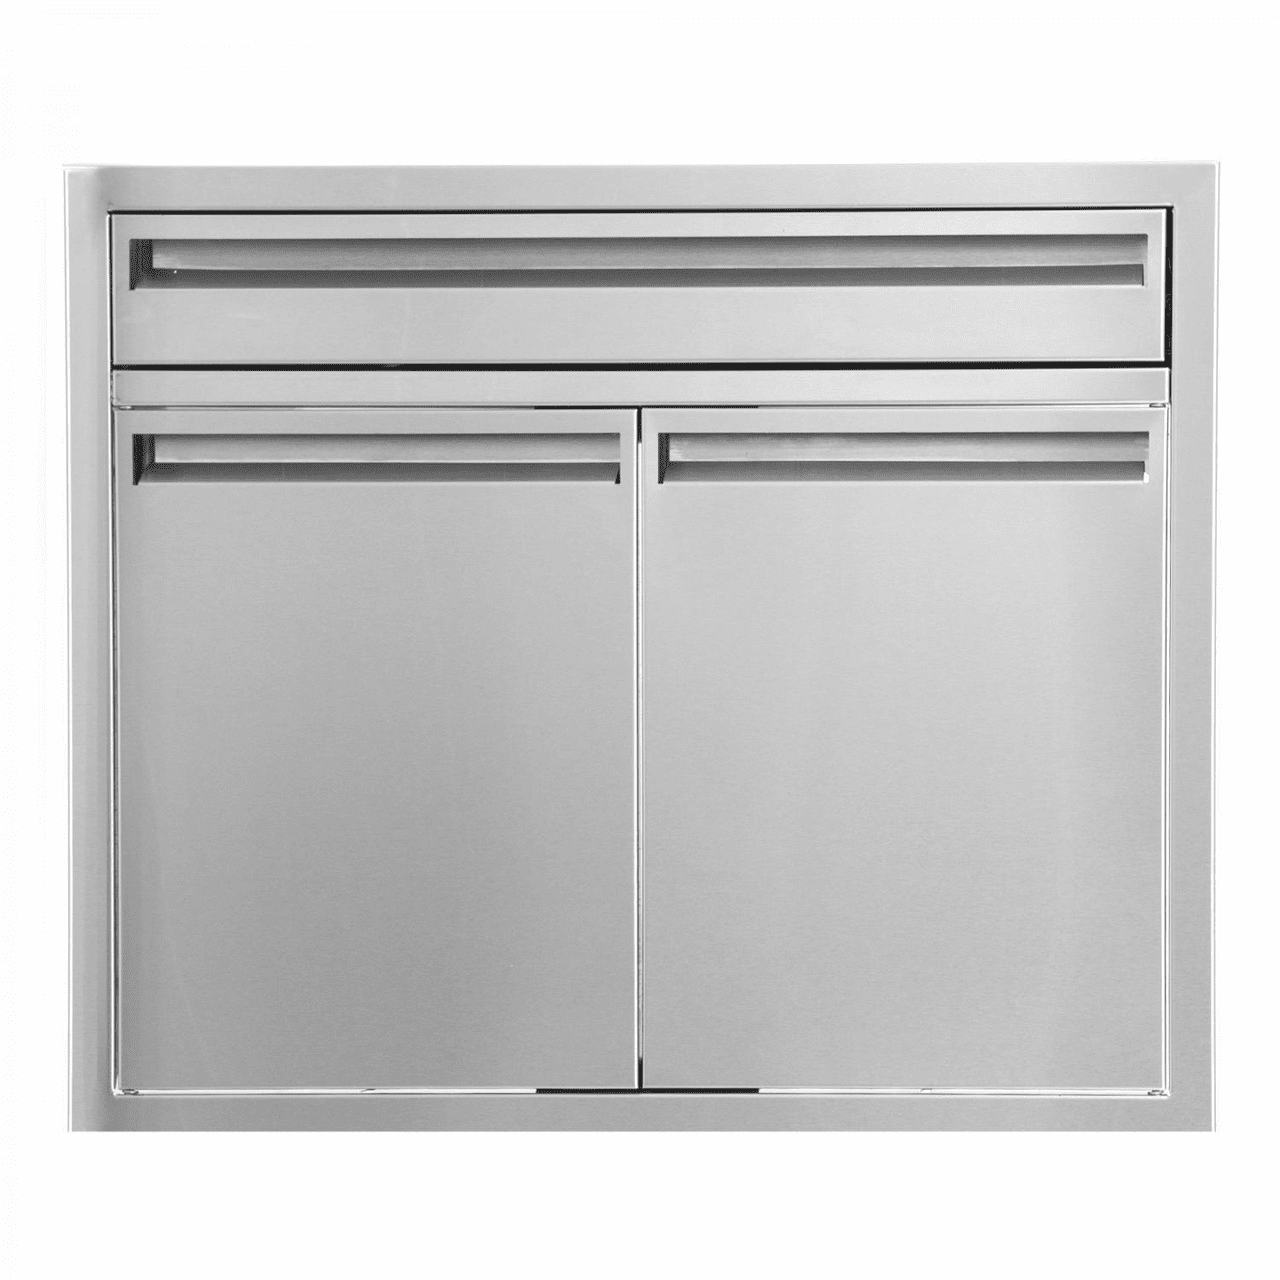 PCM 301 Series 1 Drawer 2 Door 30 inch Combo